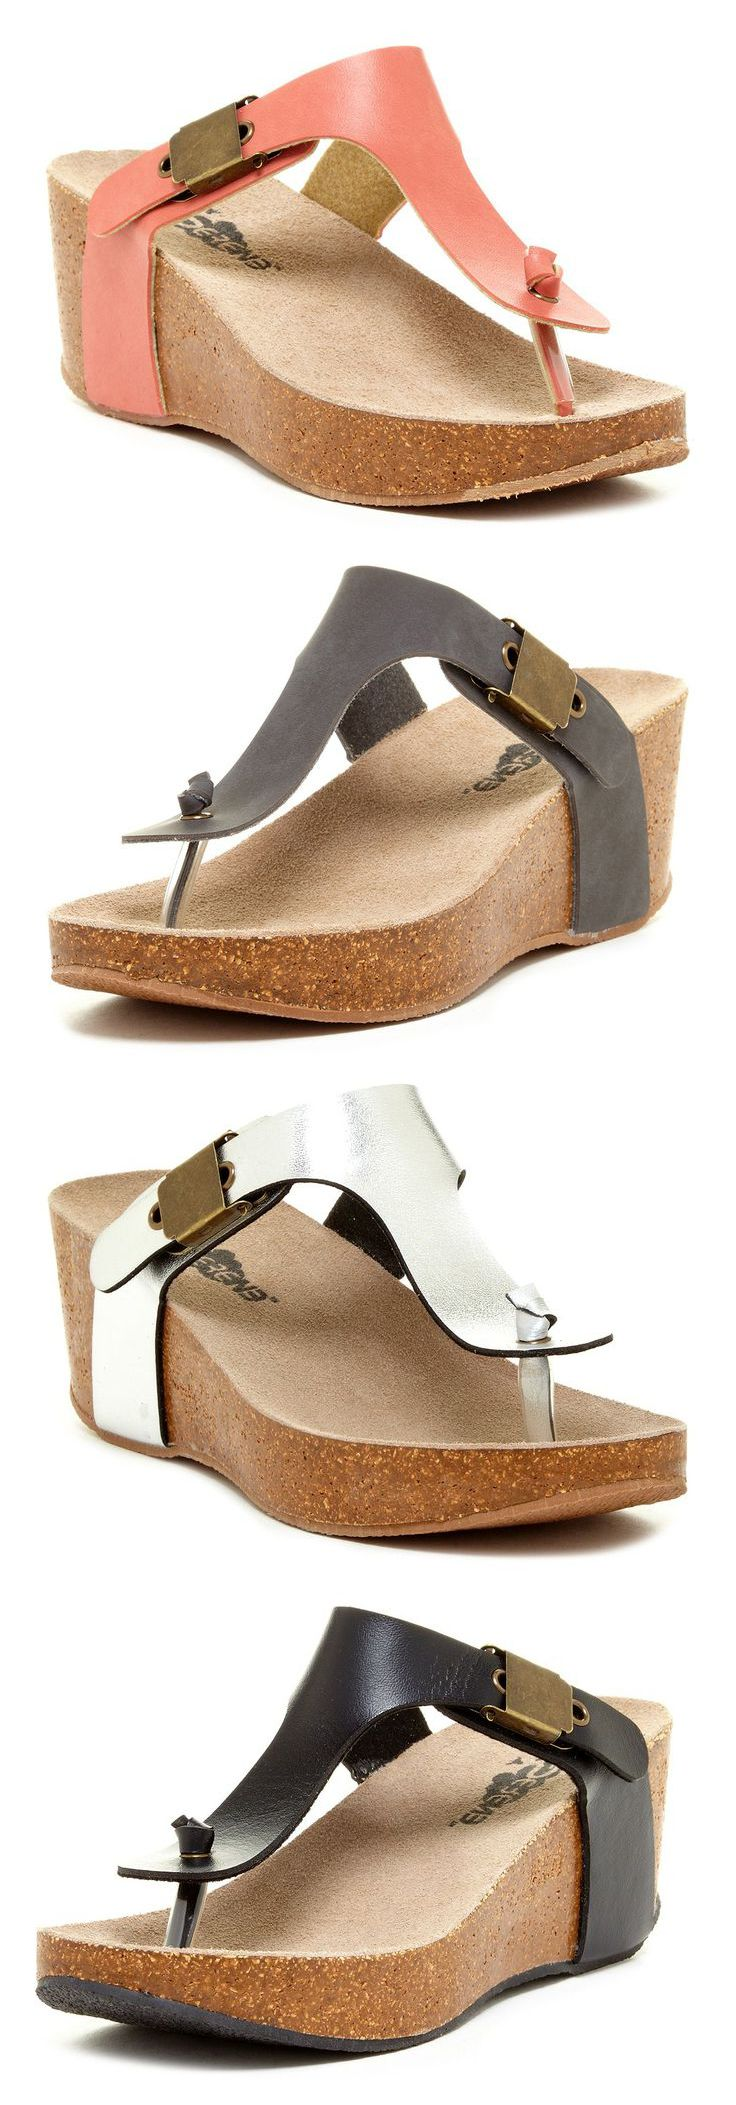 Serene Pettis Wedge Sandals in Coral, Grey, Pearl White, and Black